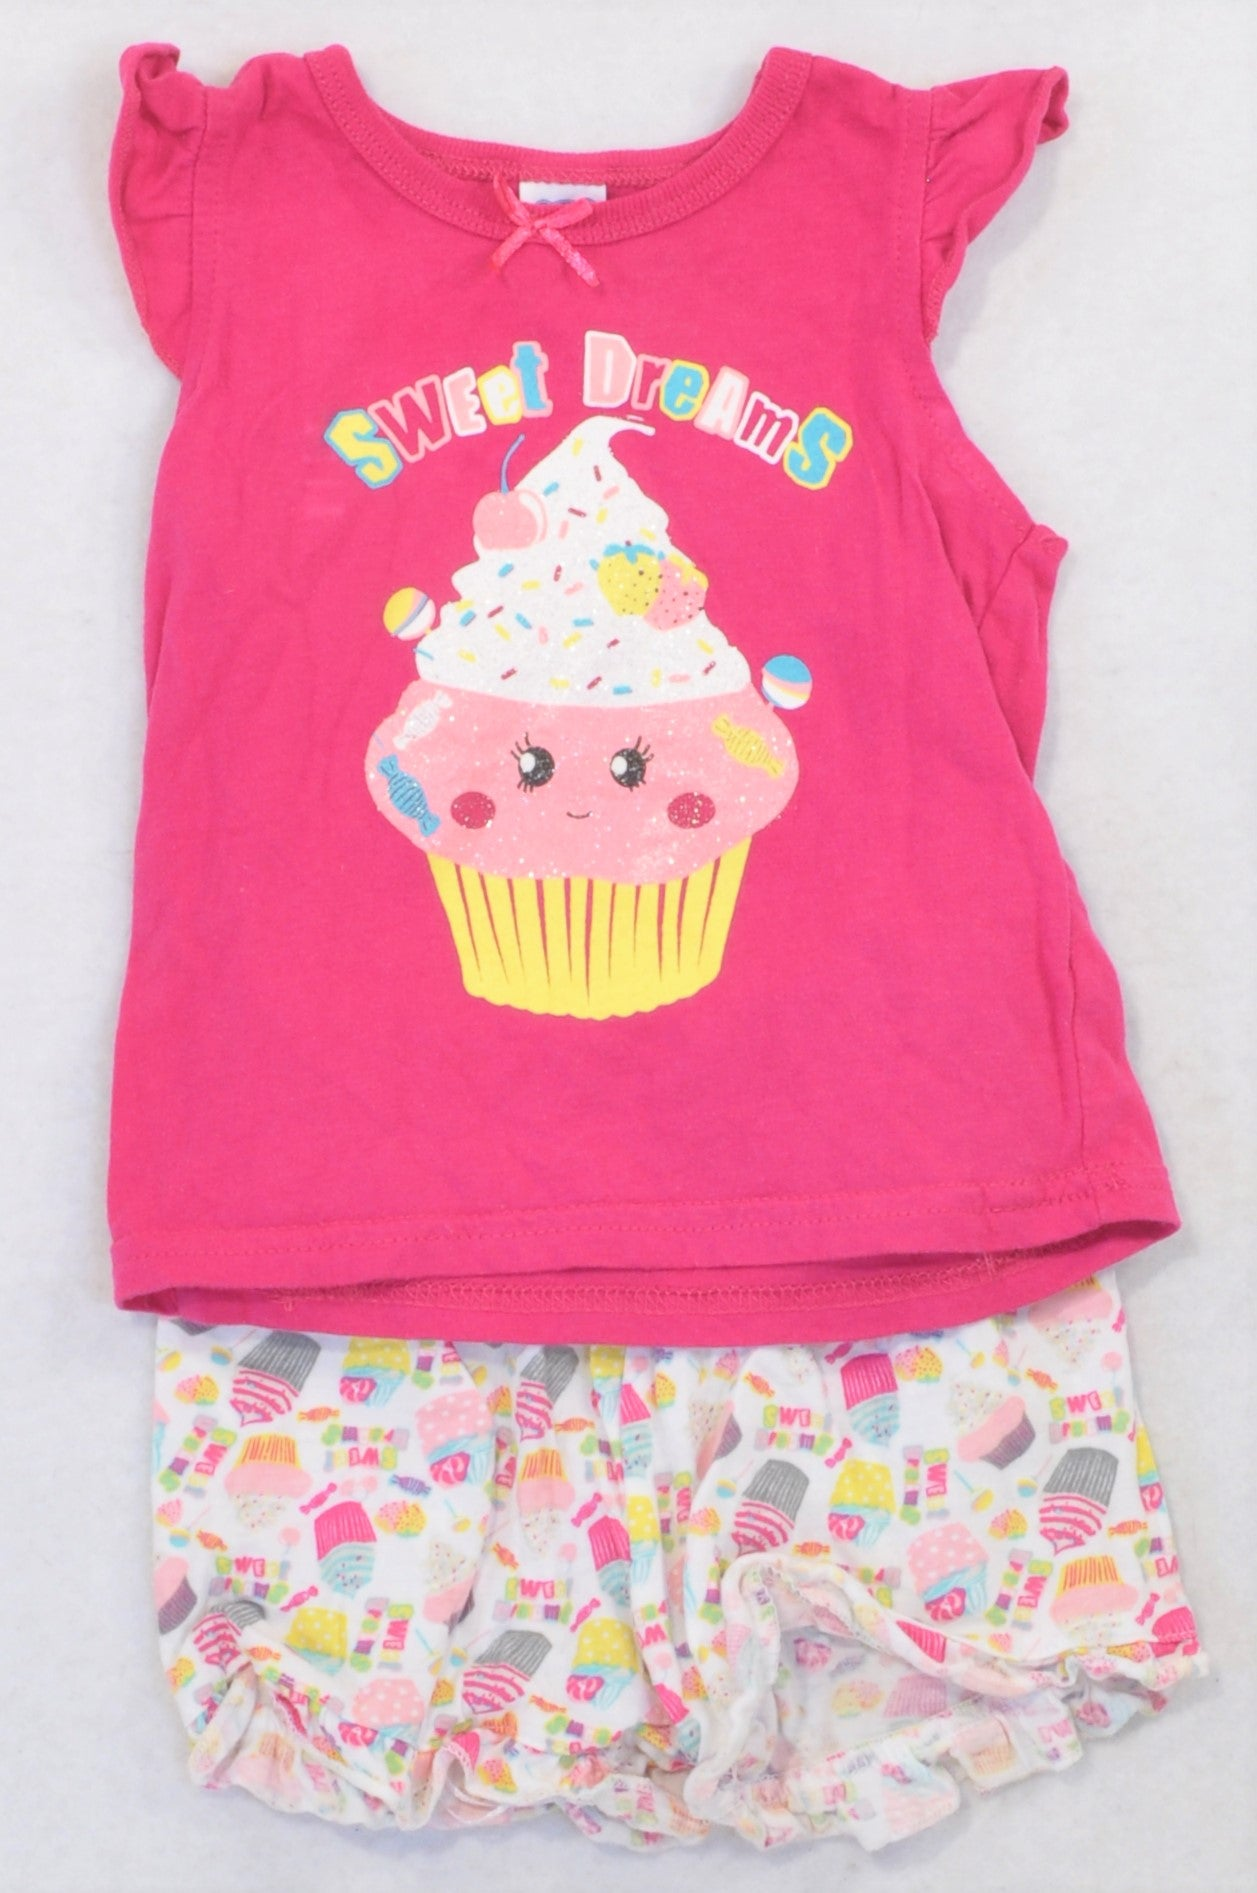 Ackermans Pink & Multi Sweet Dreams Summer Pyjamas Girls 3-6 months